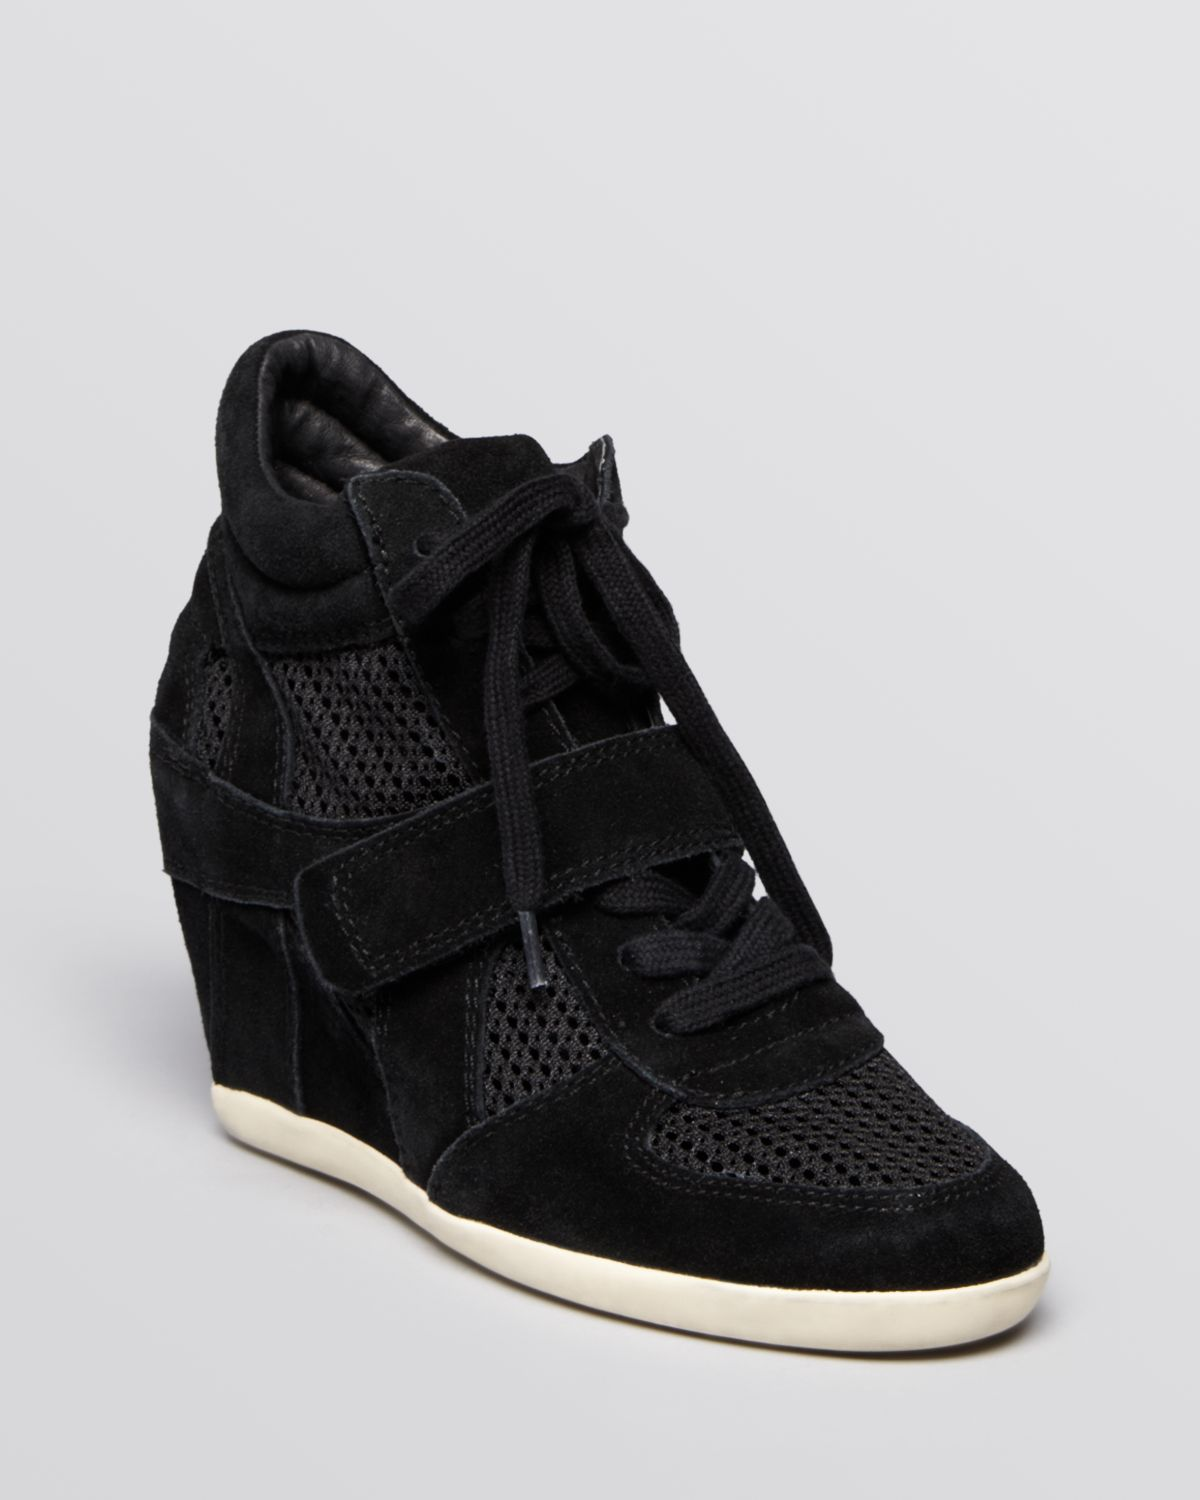 Ash Lace Up High Top Wedge Sneakers Bowie Mesh In Black Lyst